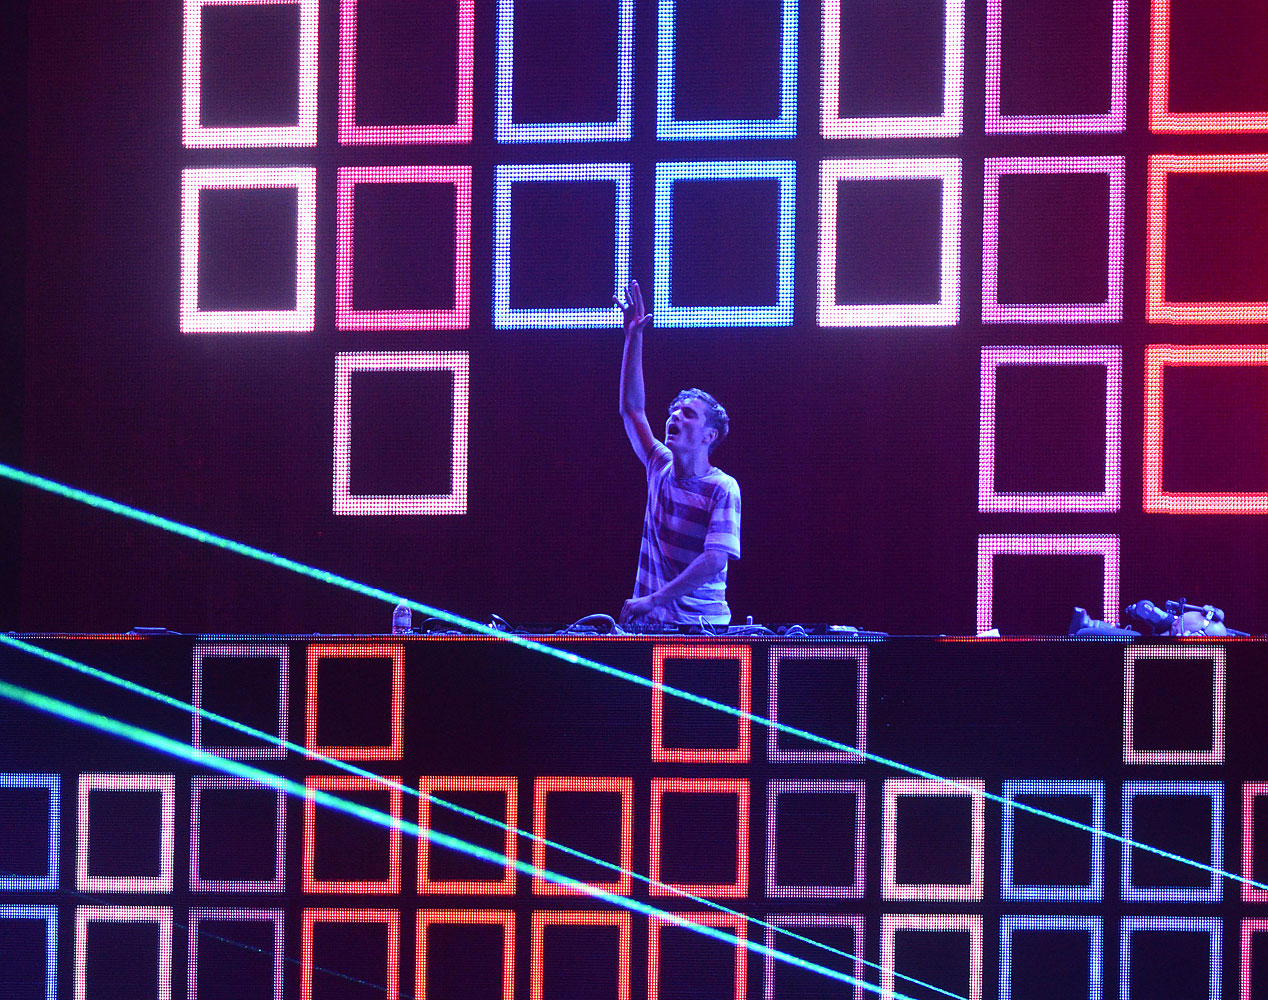 Martin Garrix performs during the 2014 Coachella Valley Music And Arts Festival at The Empire Polo Club on April 18, 2014 in Indio, Calif.